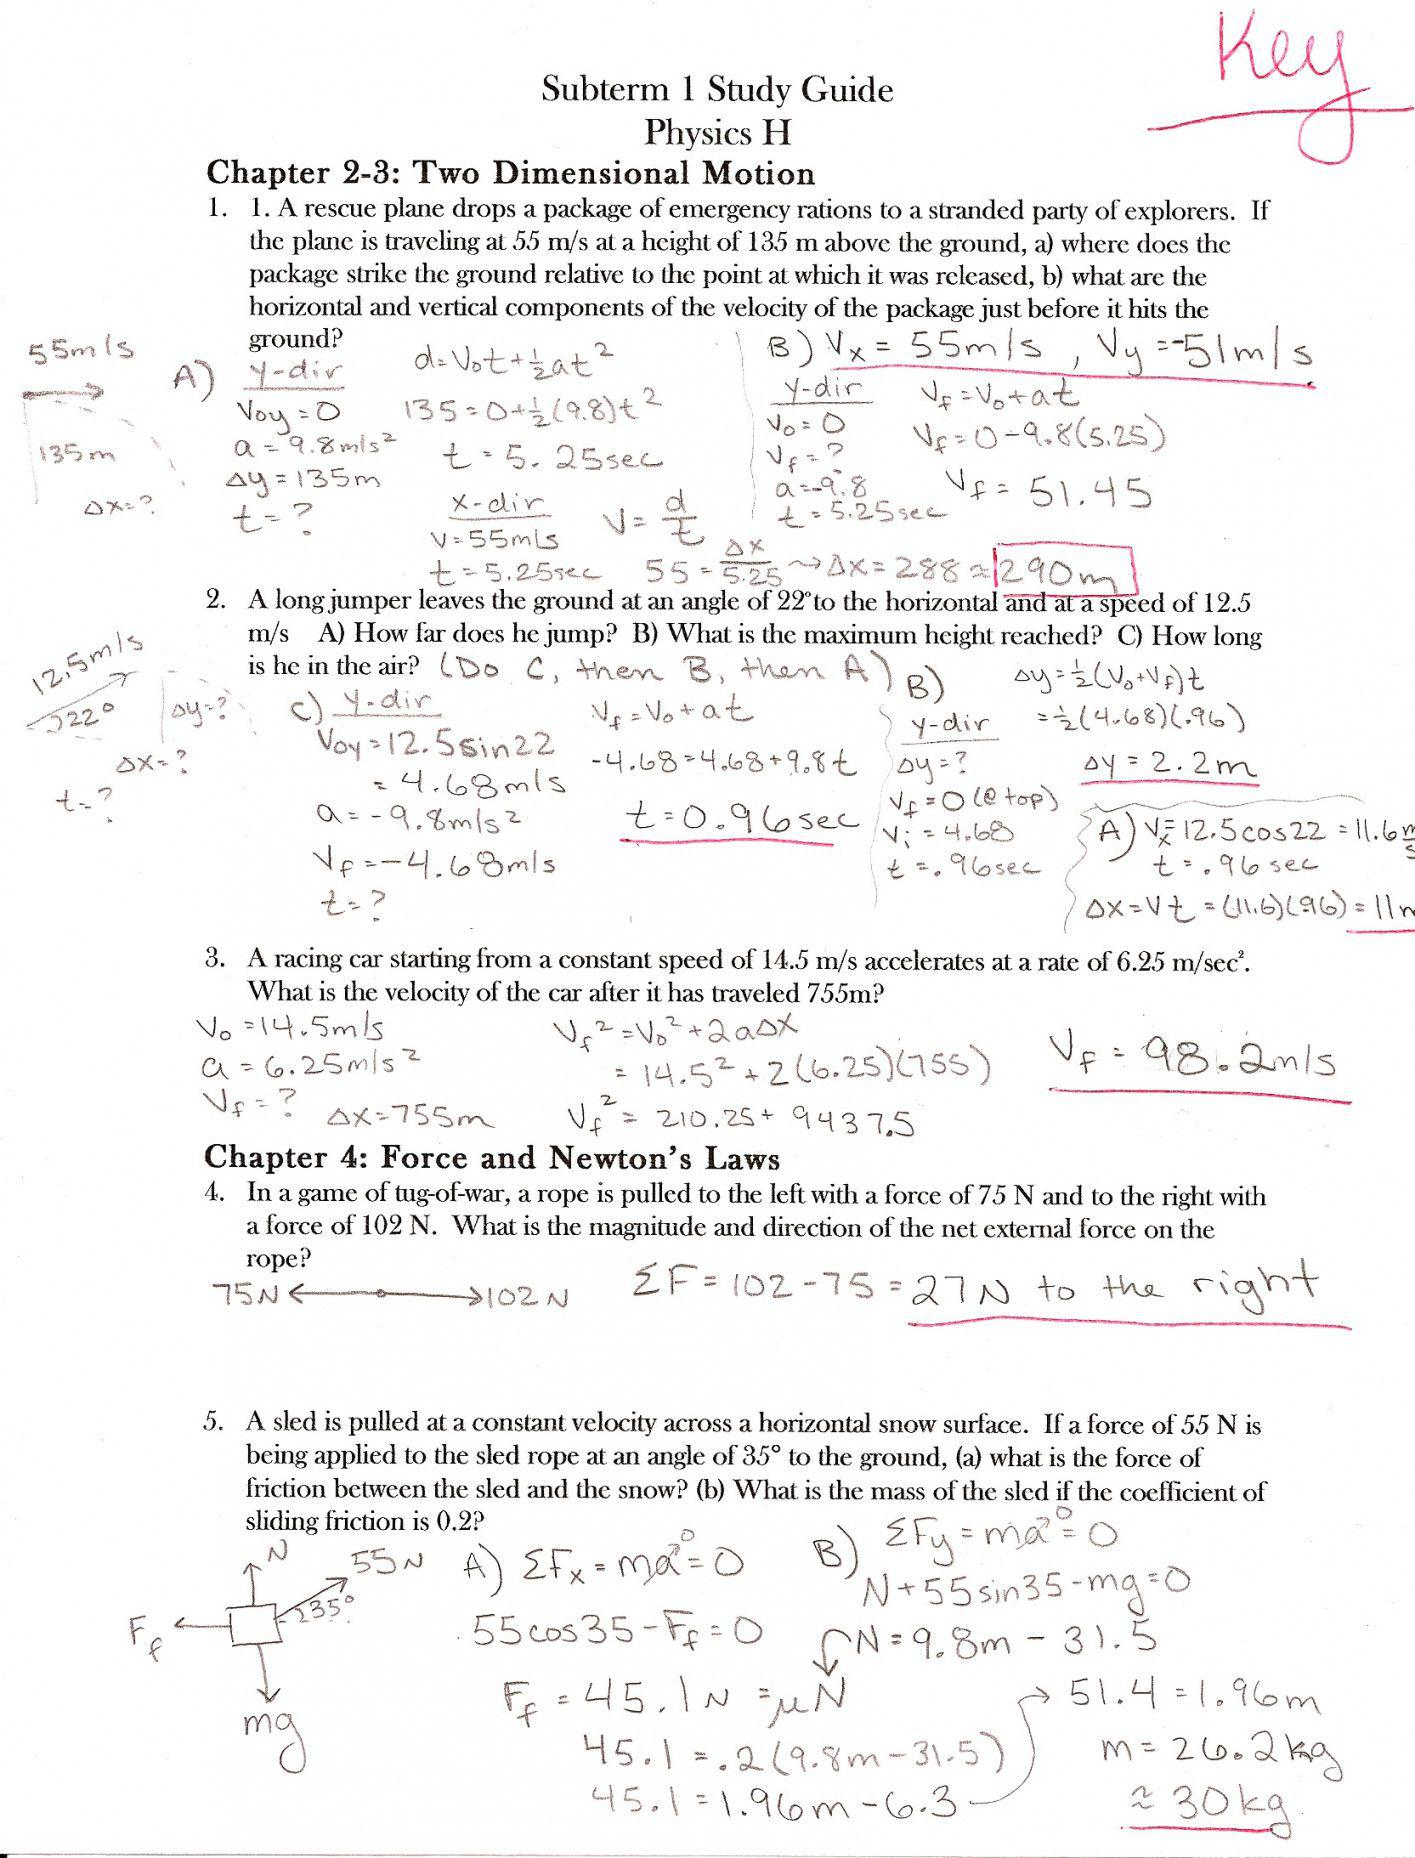 Coefficient Of Friction Worksheet Answers | Lostranquillos - Free Printable Physics Worksheets